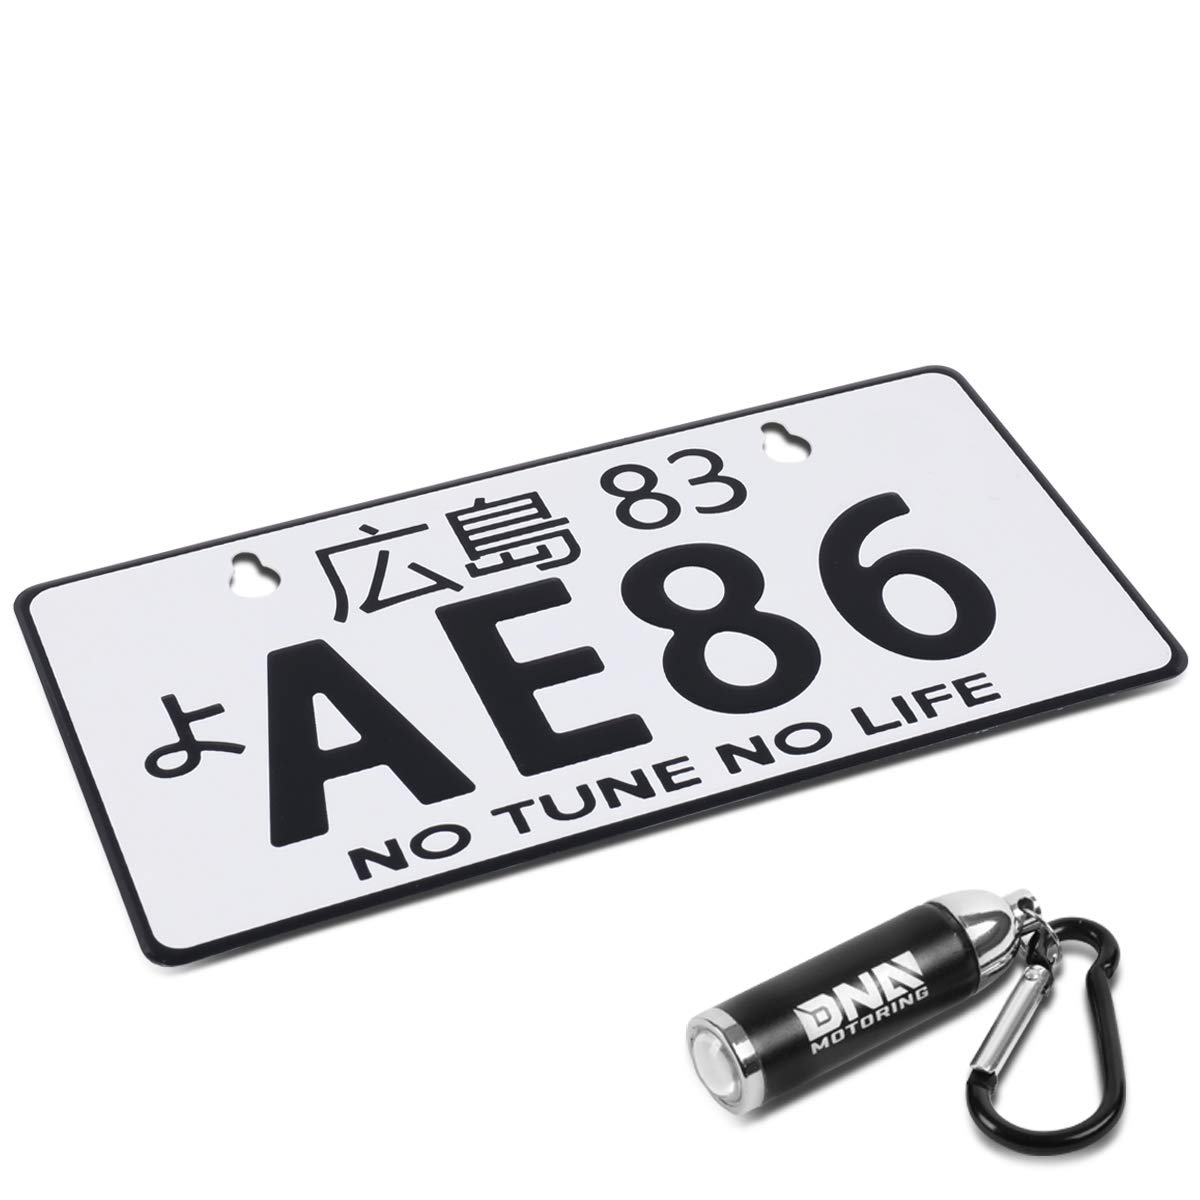 NRG Innovations MP-001-AE86 Stamped Aluminum JDM Style Hiroshima License Plate w//suction cup LED Keychain Flashlight